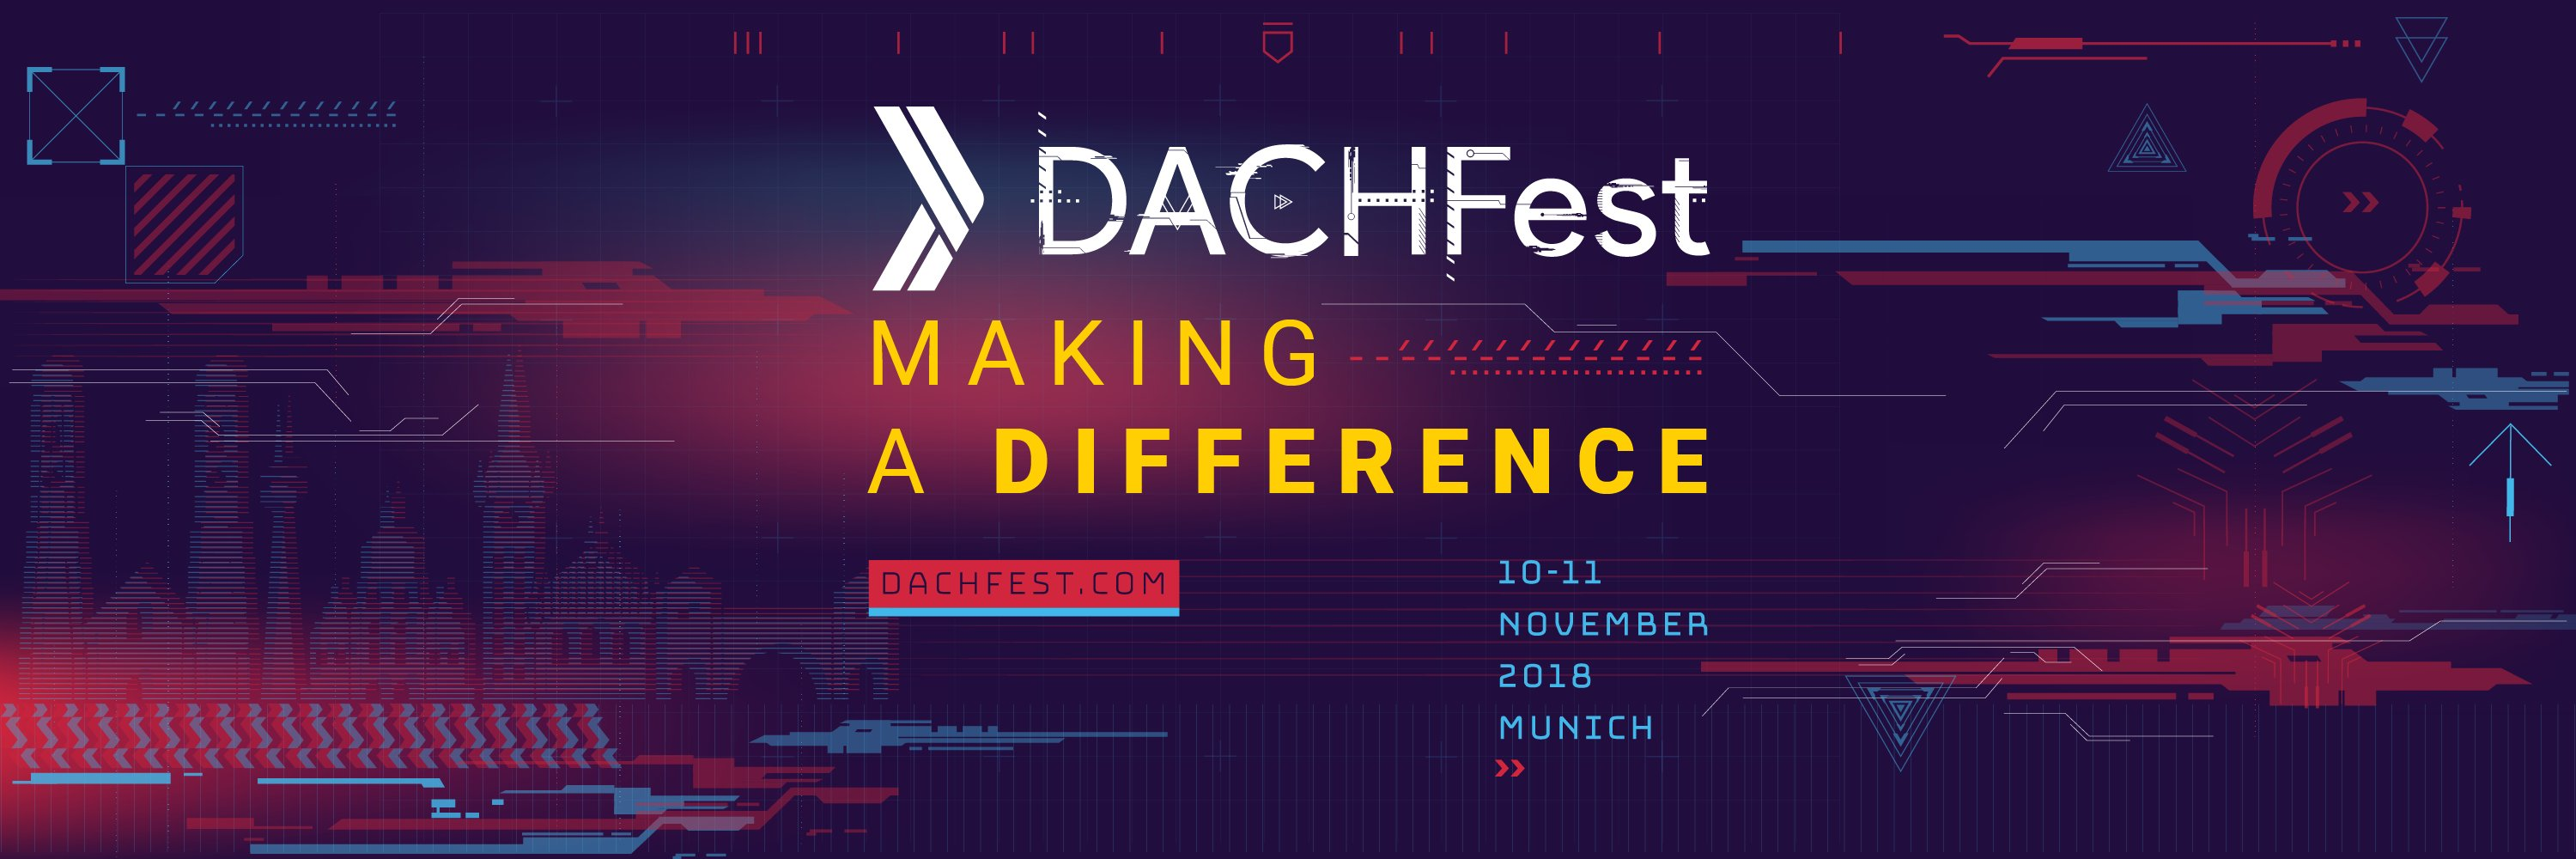 ⏲️It's almost DACHFest time⏲️ Did you get your ticket yet? If not, you should secure one now - amazing workshops,… https://t.co/xblBQmnAPp